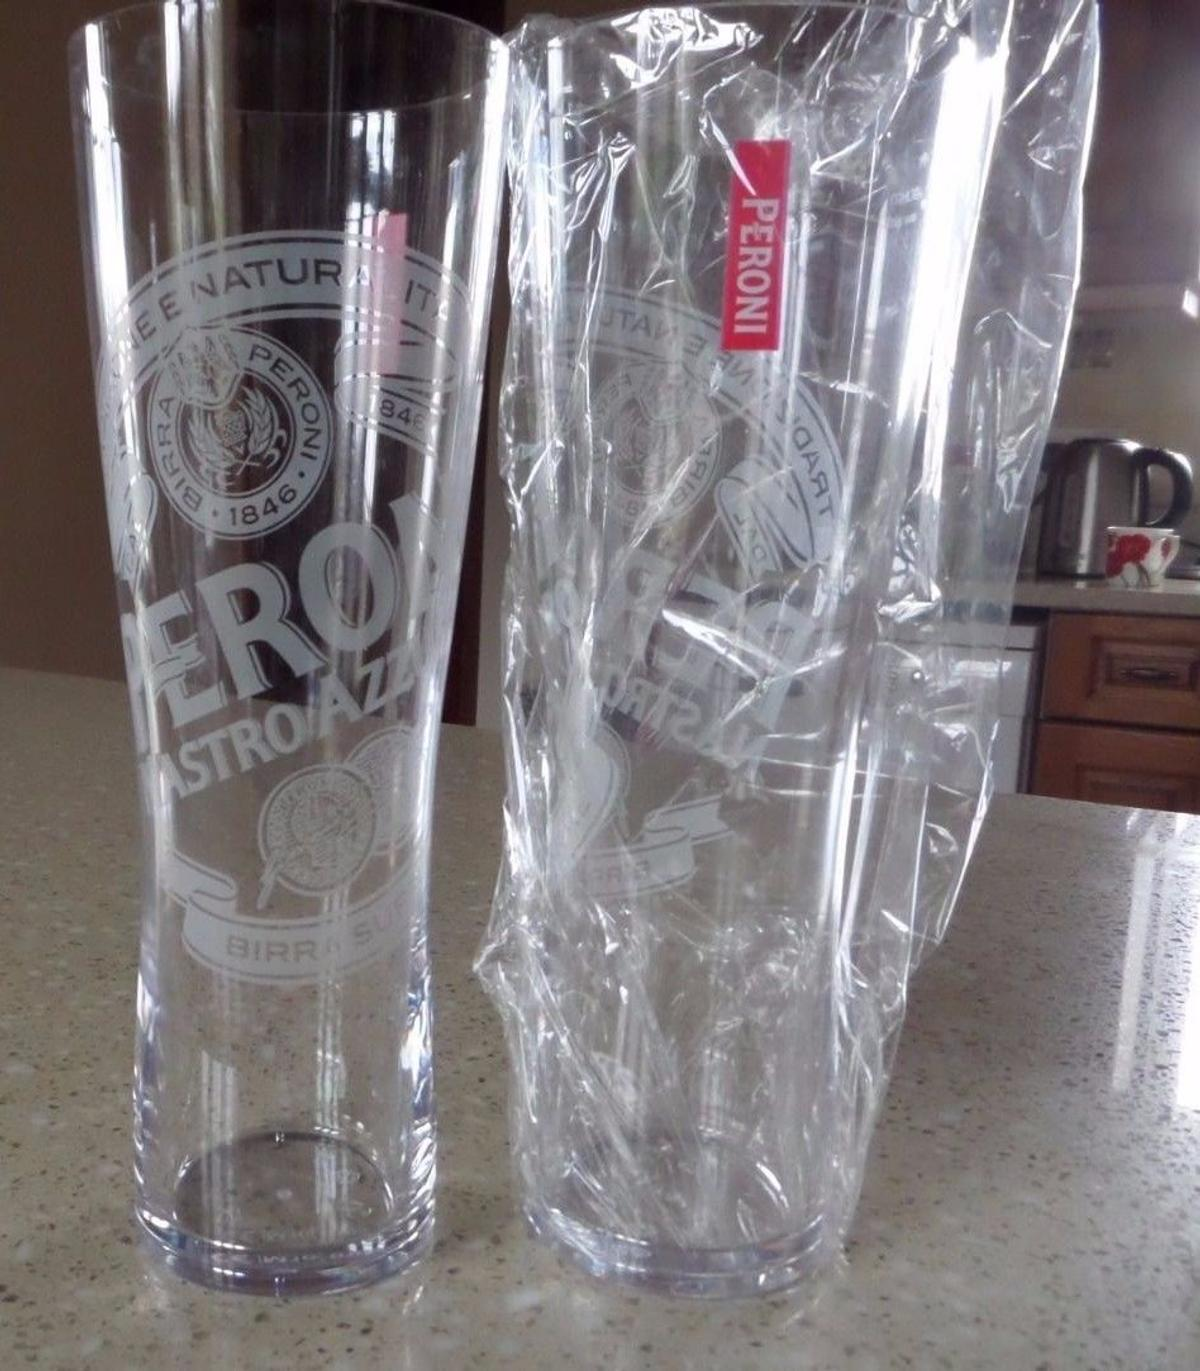 Set Of 2 Kingfisher Half Pint Glasses Brand New 100/% Genuine Official